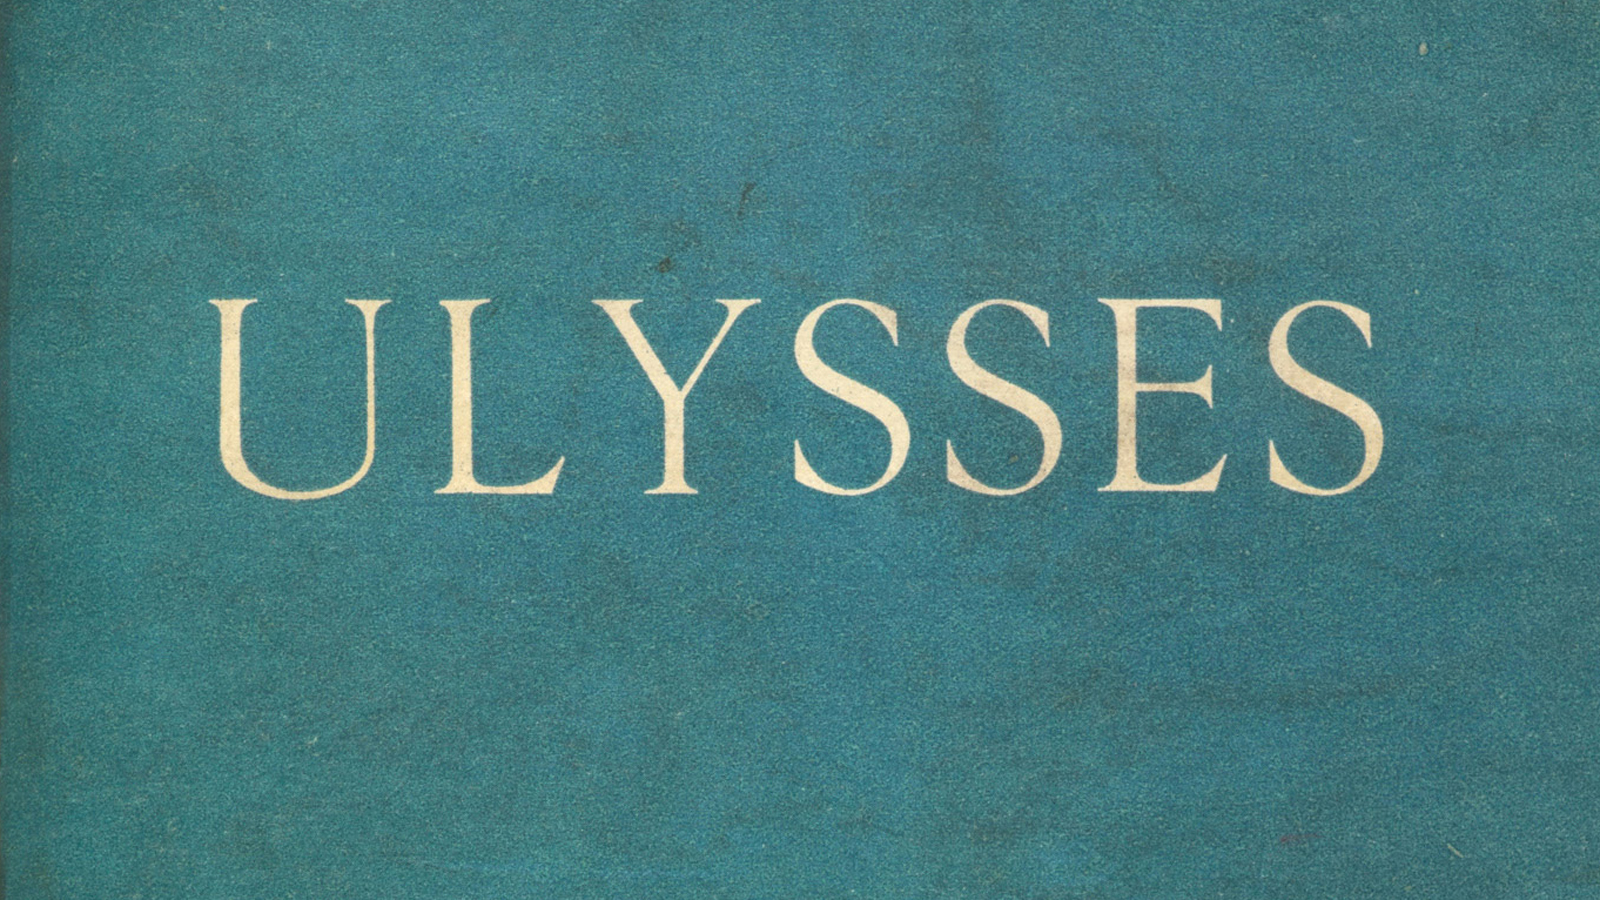 Obscenity in Ulysses